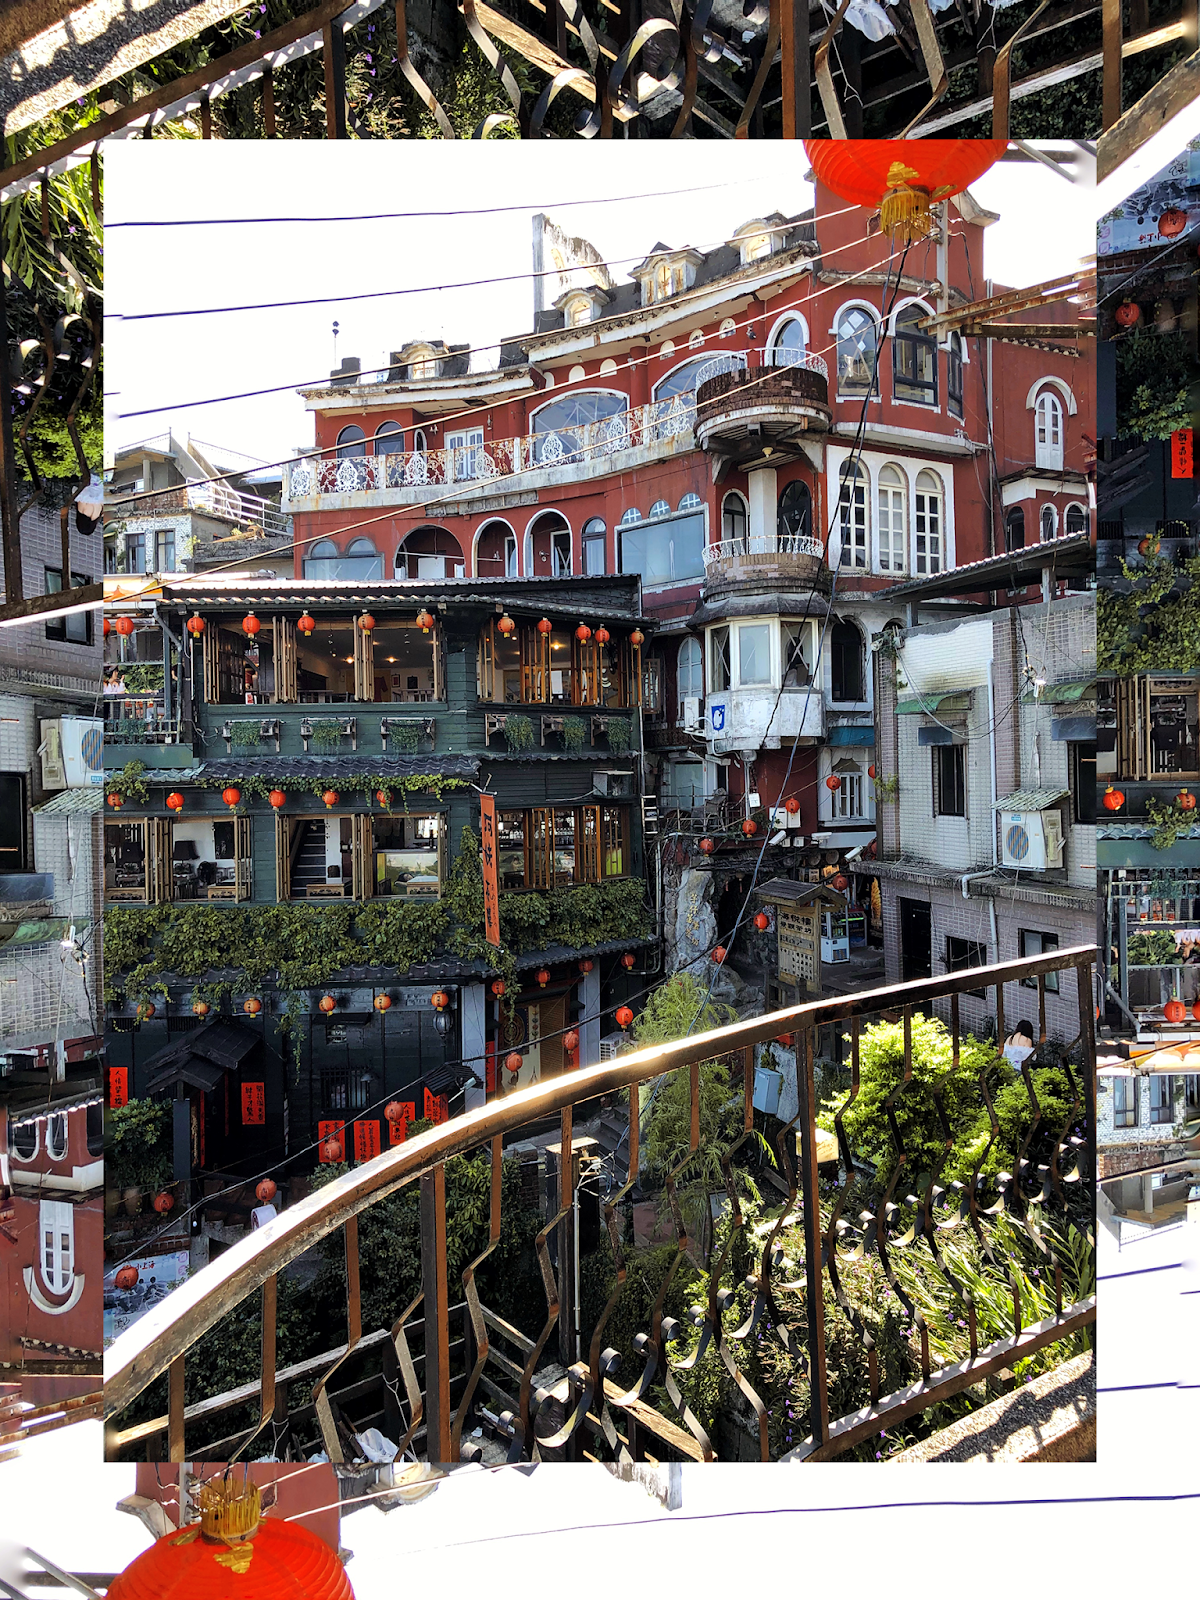 Taipei Travels, Jiufen, Jiufen Old Street, Spirited Away In Real Life, Jiufen Photos, Photos that will make you want to visit Jiufen right away, Taiwan's Jiufen, / Jiufen, Taiwan / A Real Life Spirited Away / FOREVERVANNY